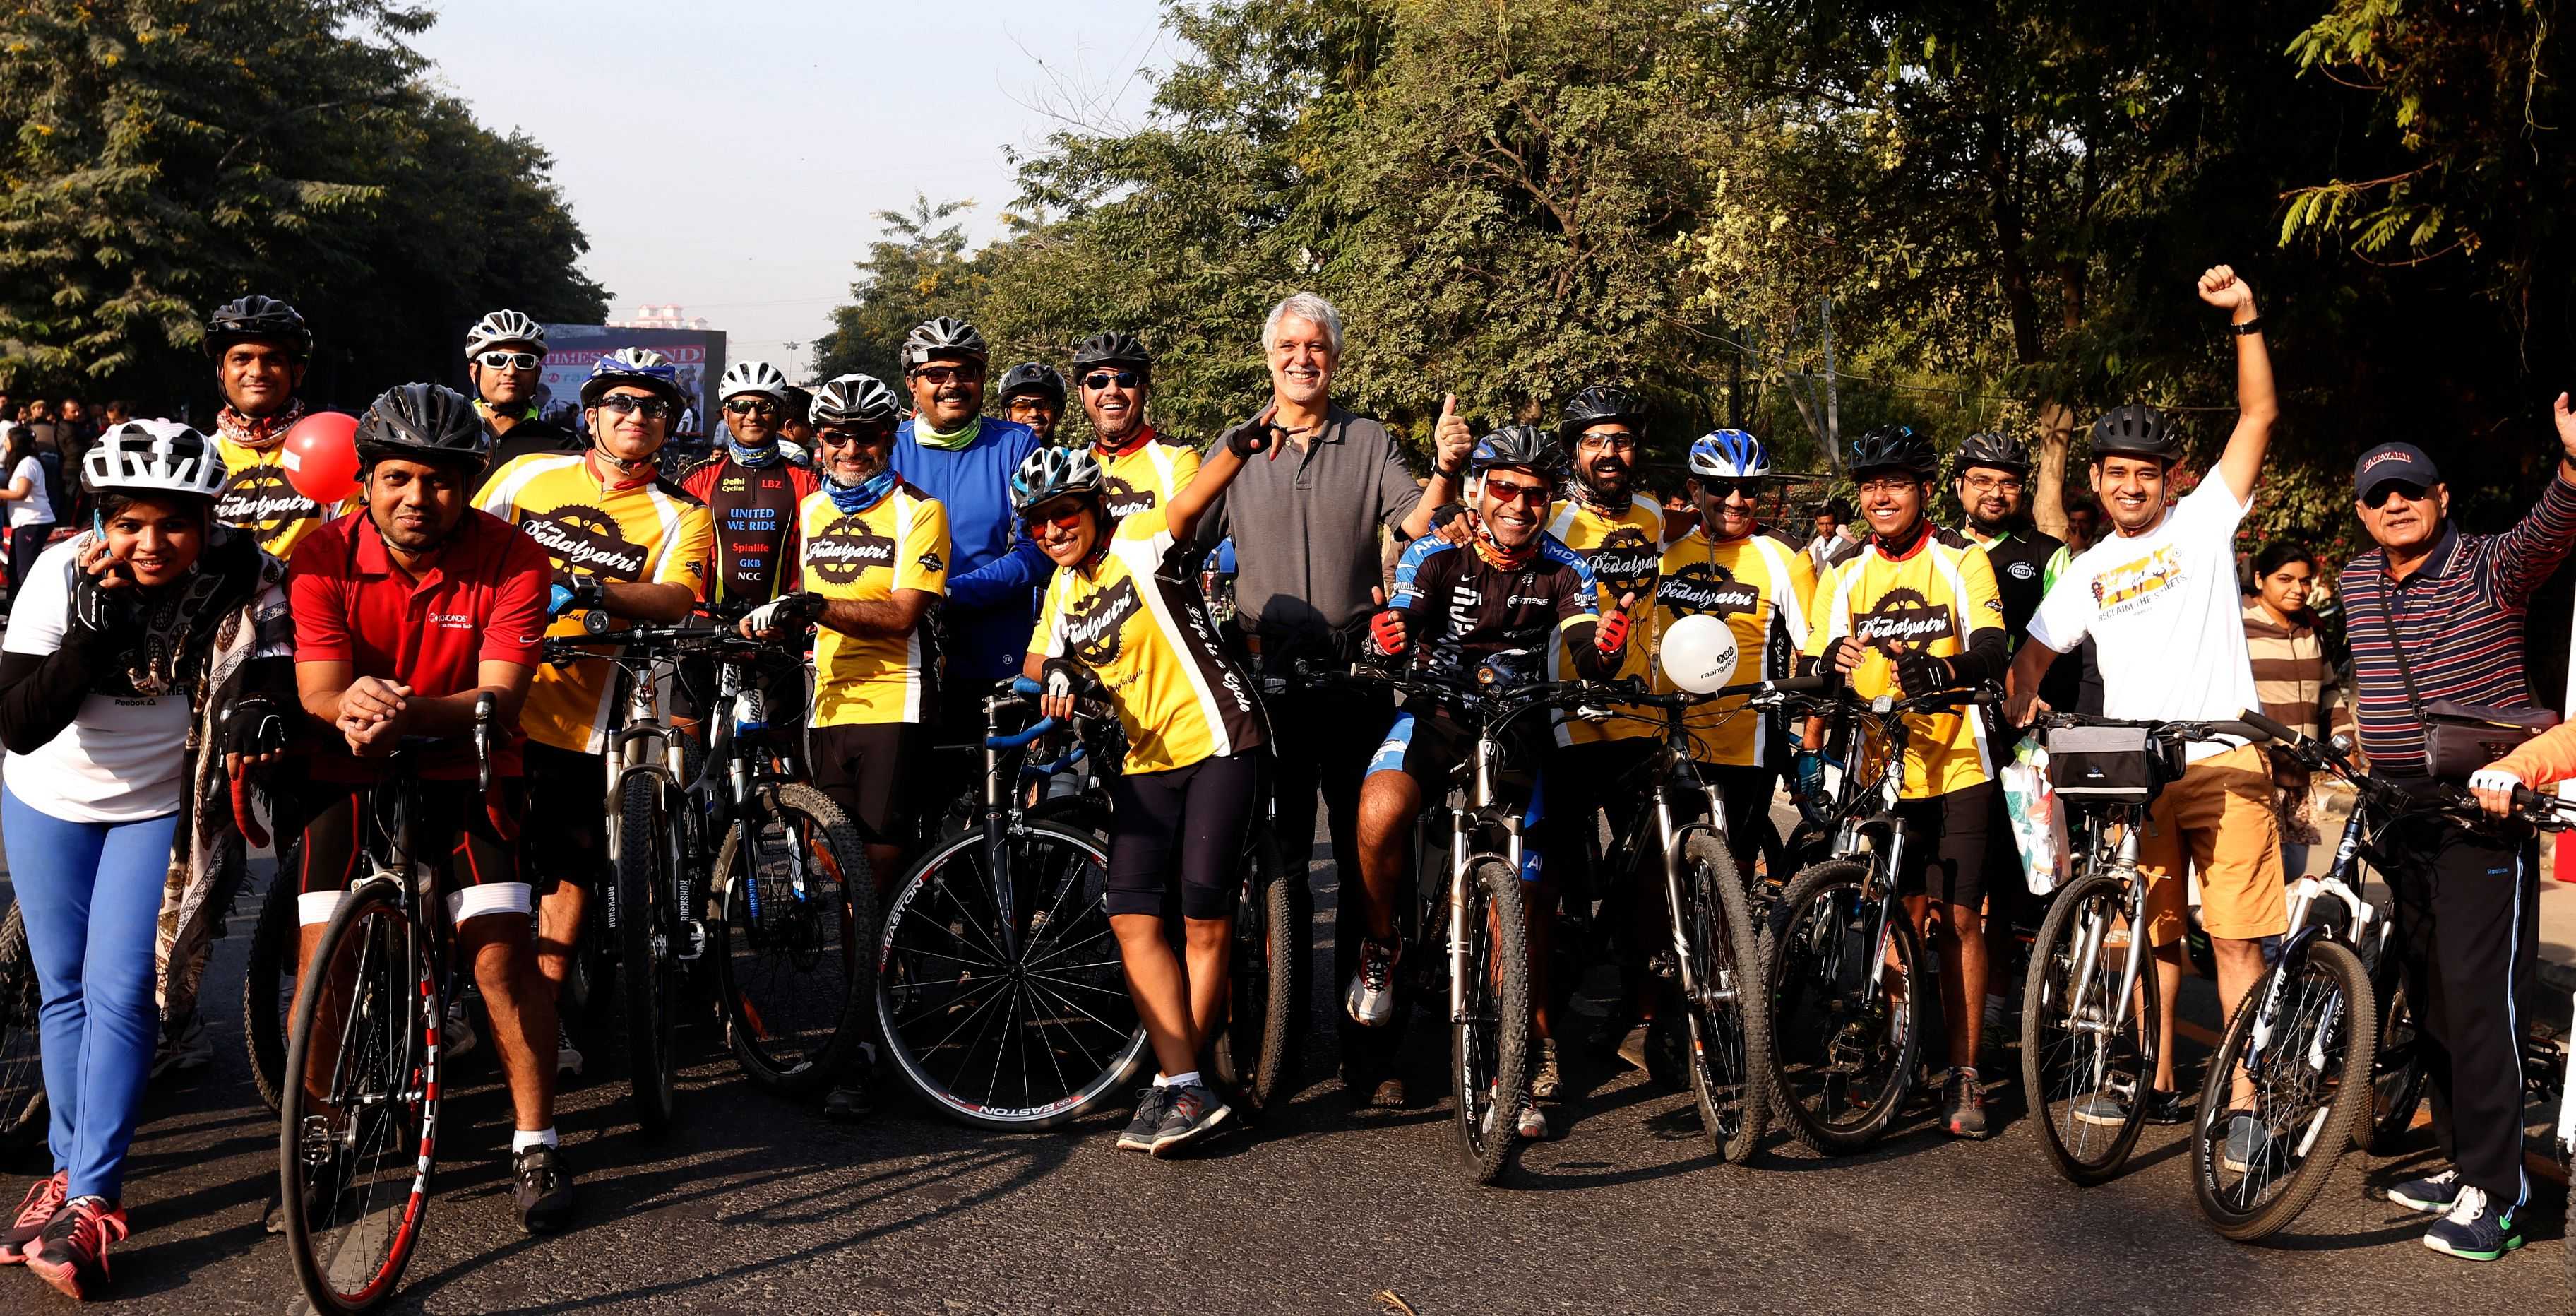 Cycling events, such as the one organised during Raahgiri Day in the Capital recently, are a novel way to draw the attention of the general public to the issue of violence against women and drum up support for increased mobility for women.